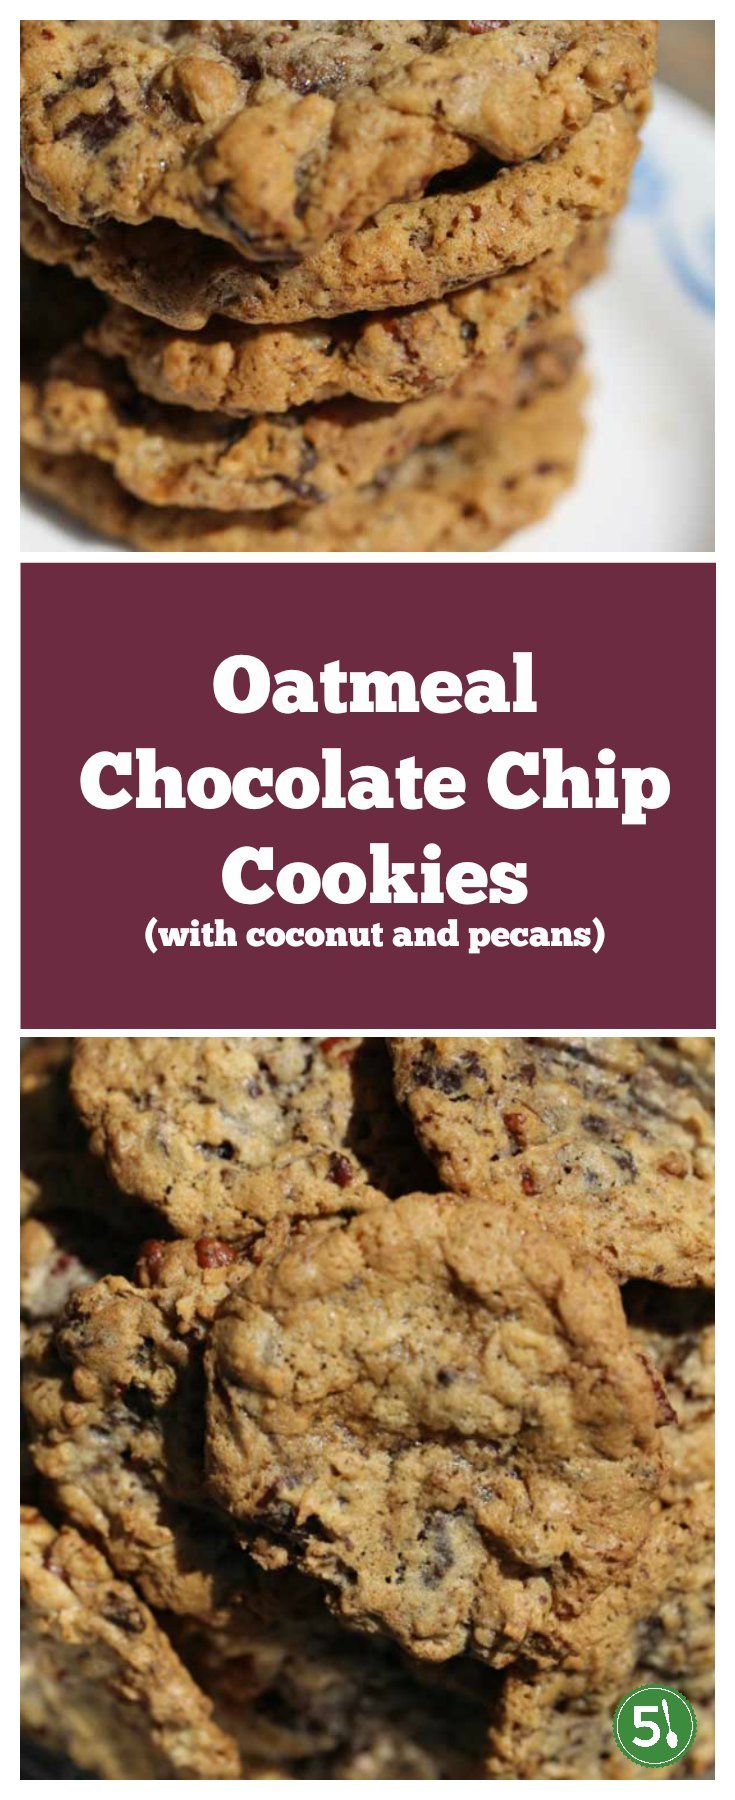 Chewy and soft oatmeal chocolate chip cookies loaded with pecans and coconut are a delicious combination.  Flour Bakery's Chunky Lola cookies are delish!